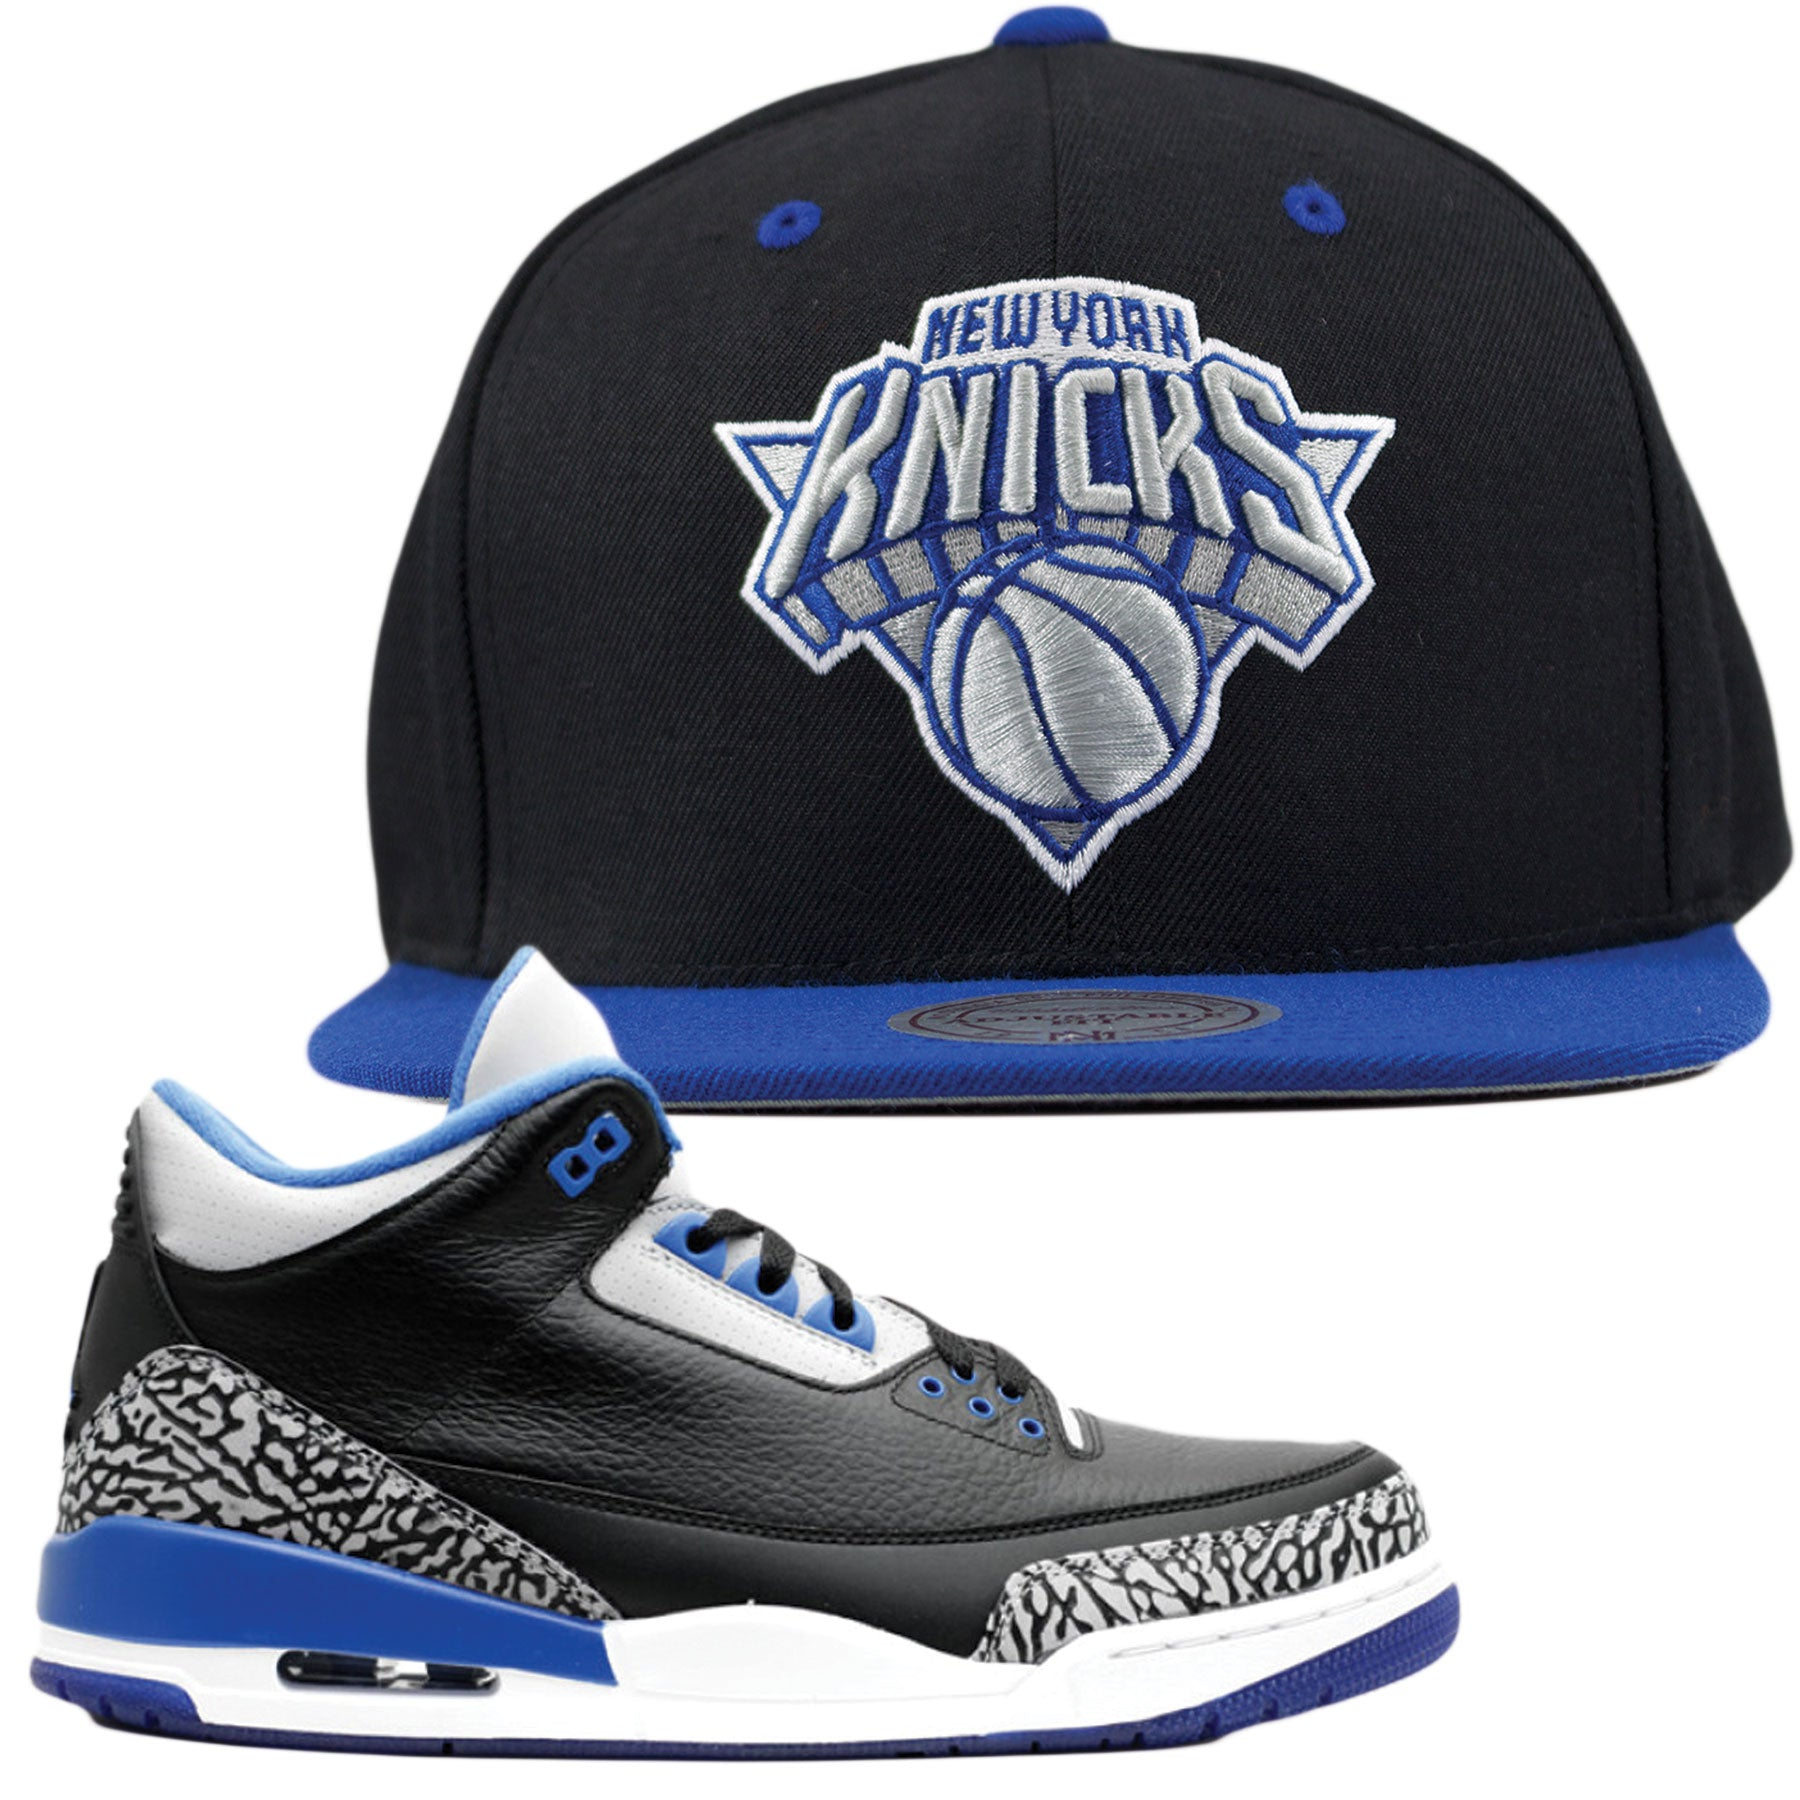 timeless design 2f154 c491e Jordan 3 Sport Blue Sneaker Matching New York Knicks Strapback Hat